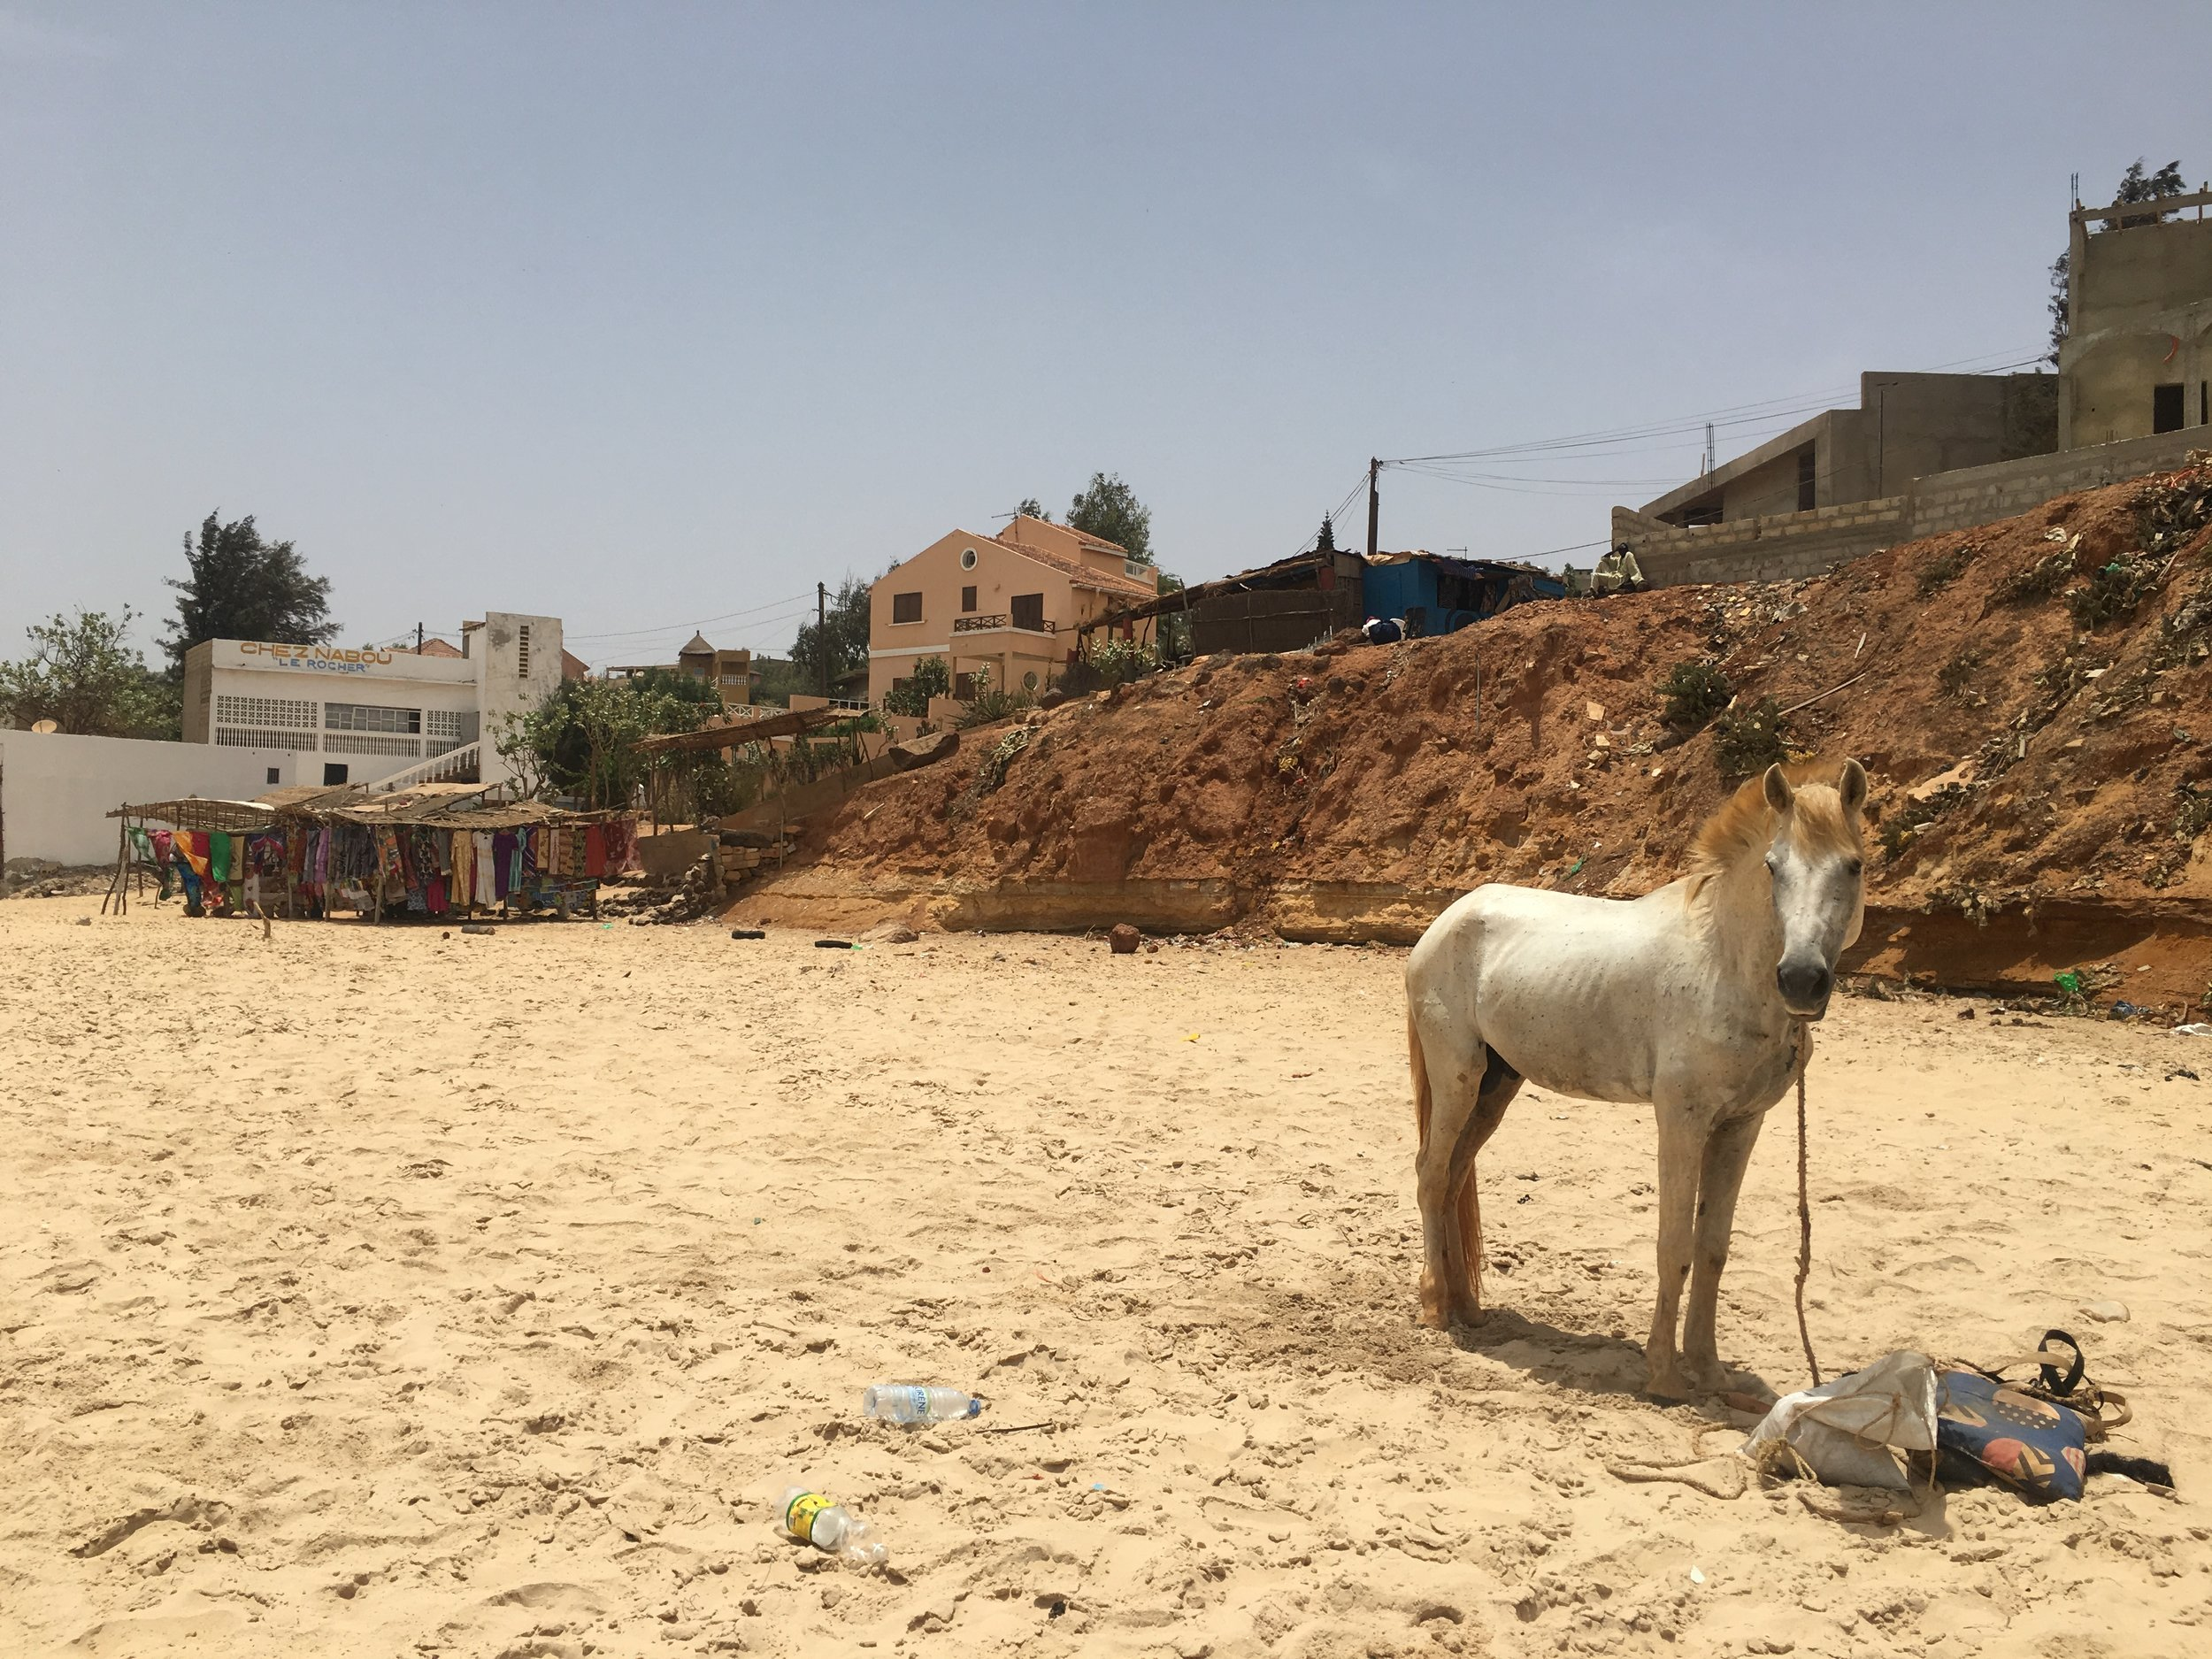 A horse stands on the beach in Toubab Dialaw.